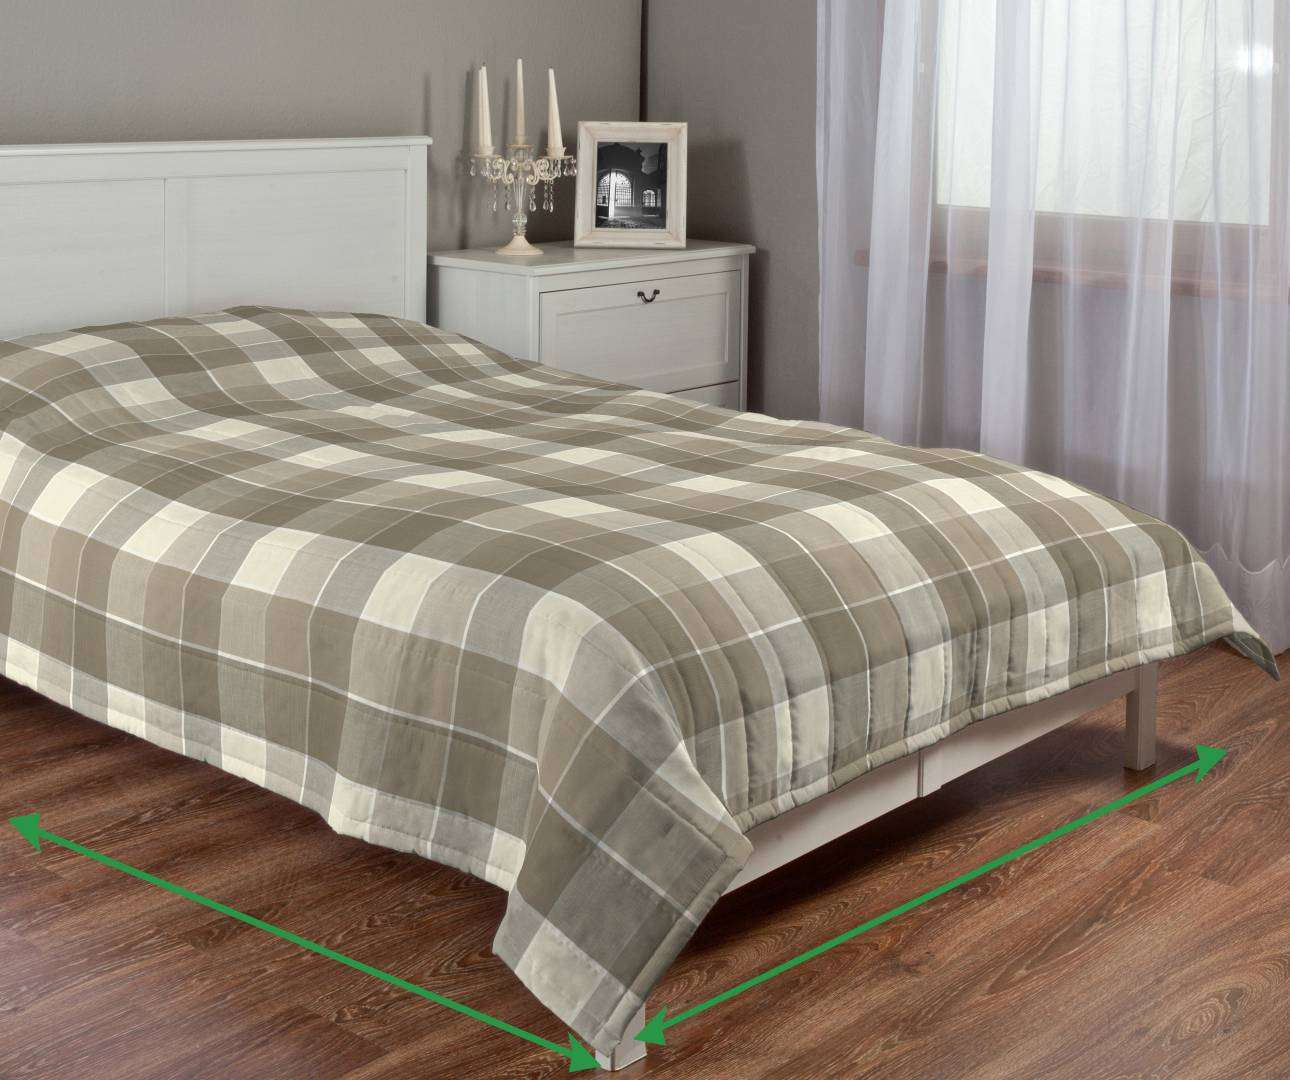 Quilted throw (vertical quilt pattern) in collection Cardiff, fabric: 136-28